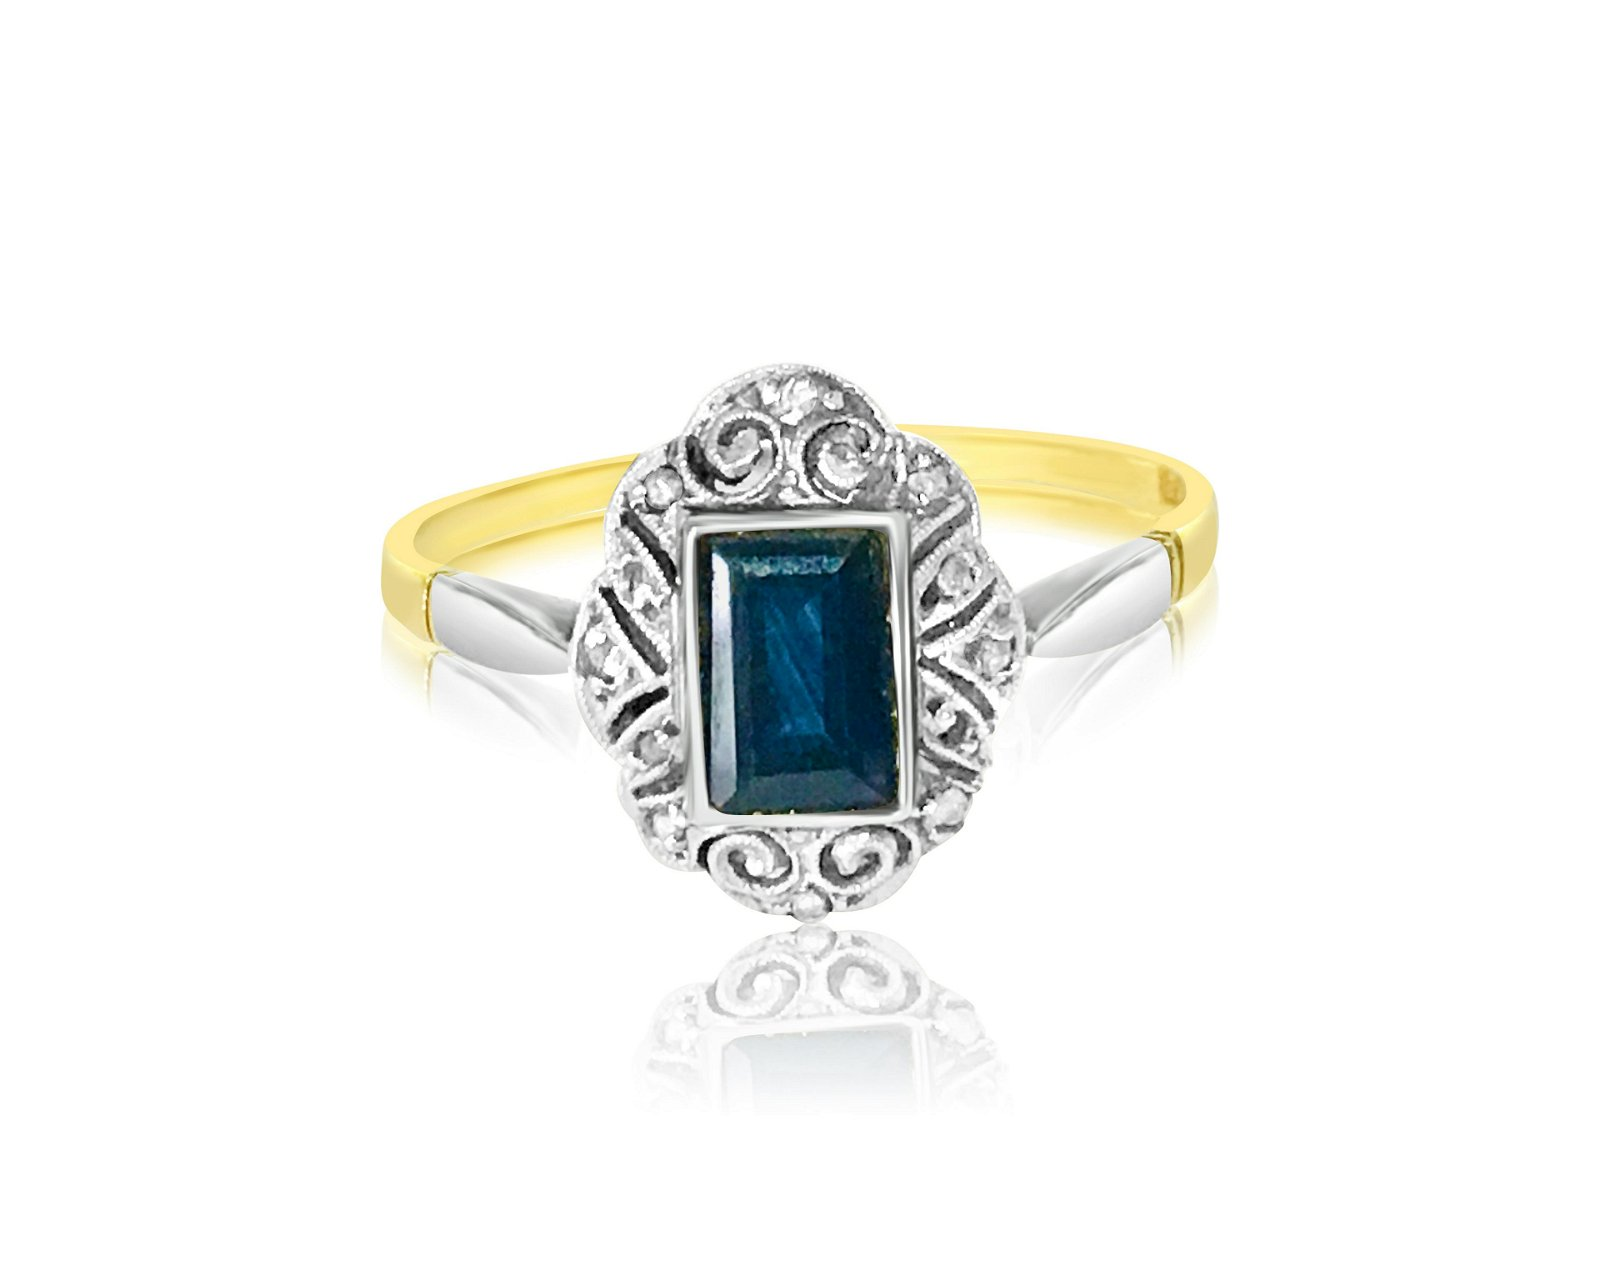 Vintage 18K Gold and 1.50 Carat Blue Sapphire Ring